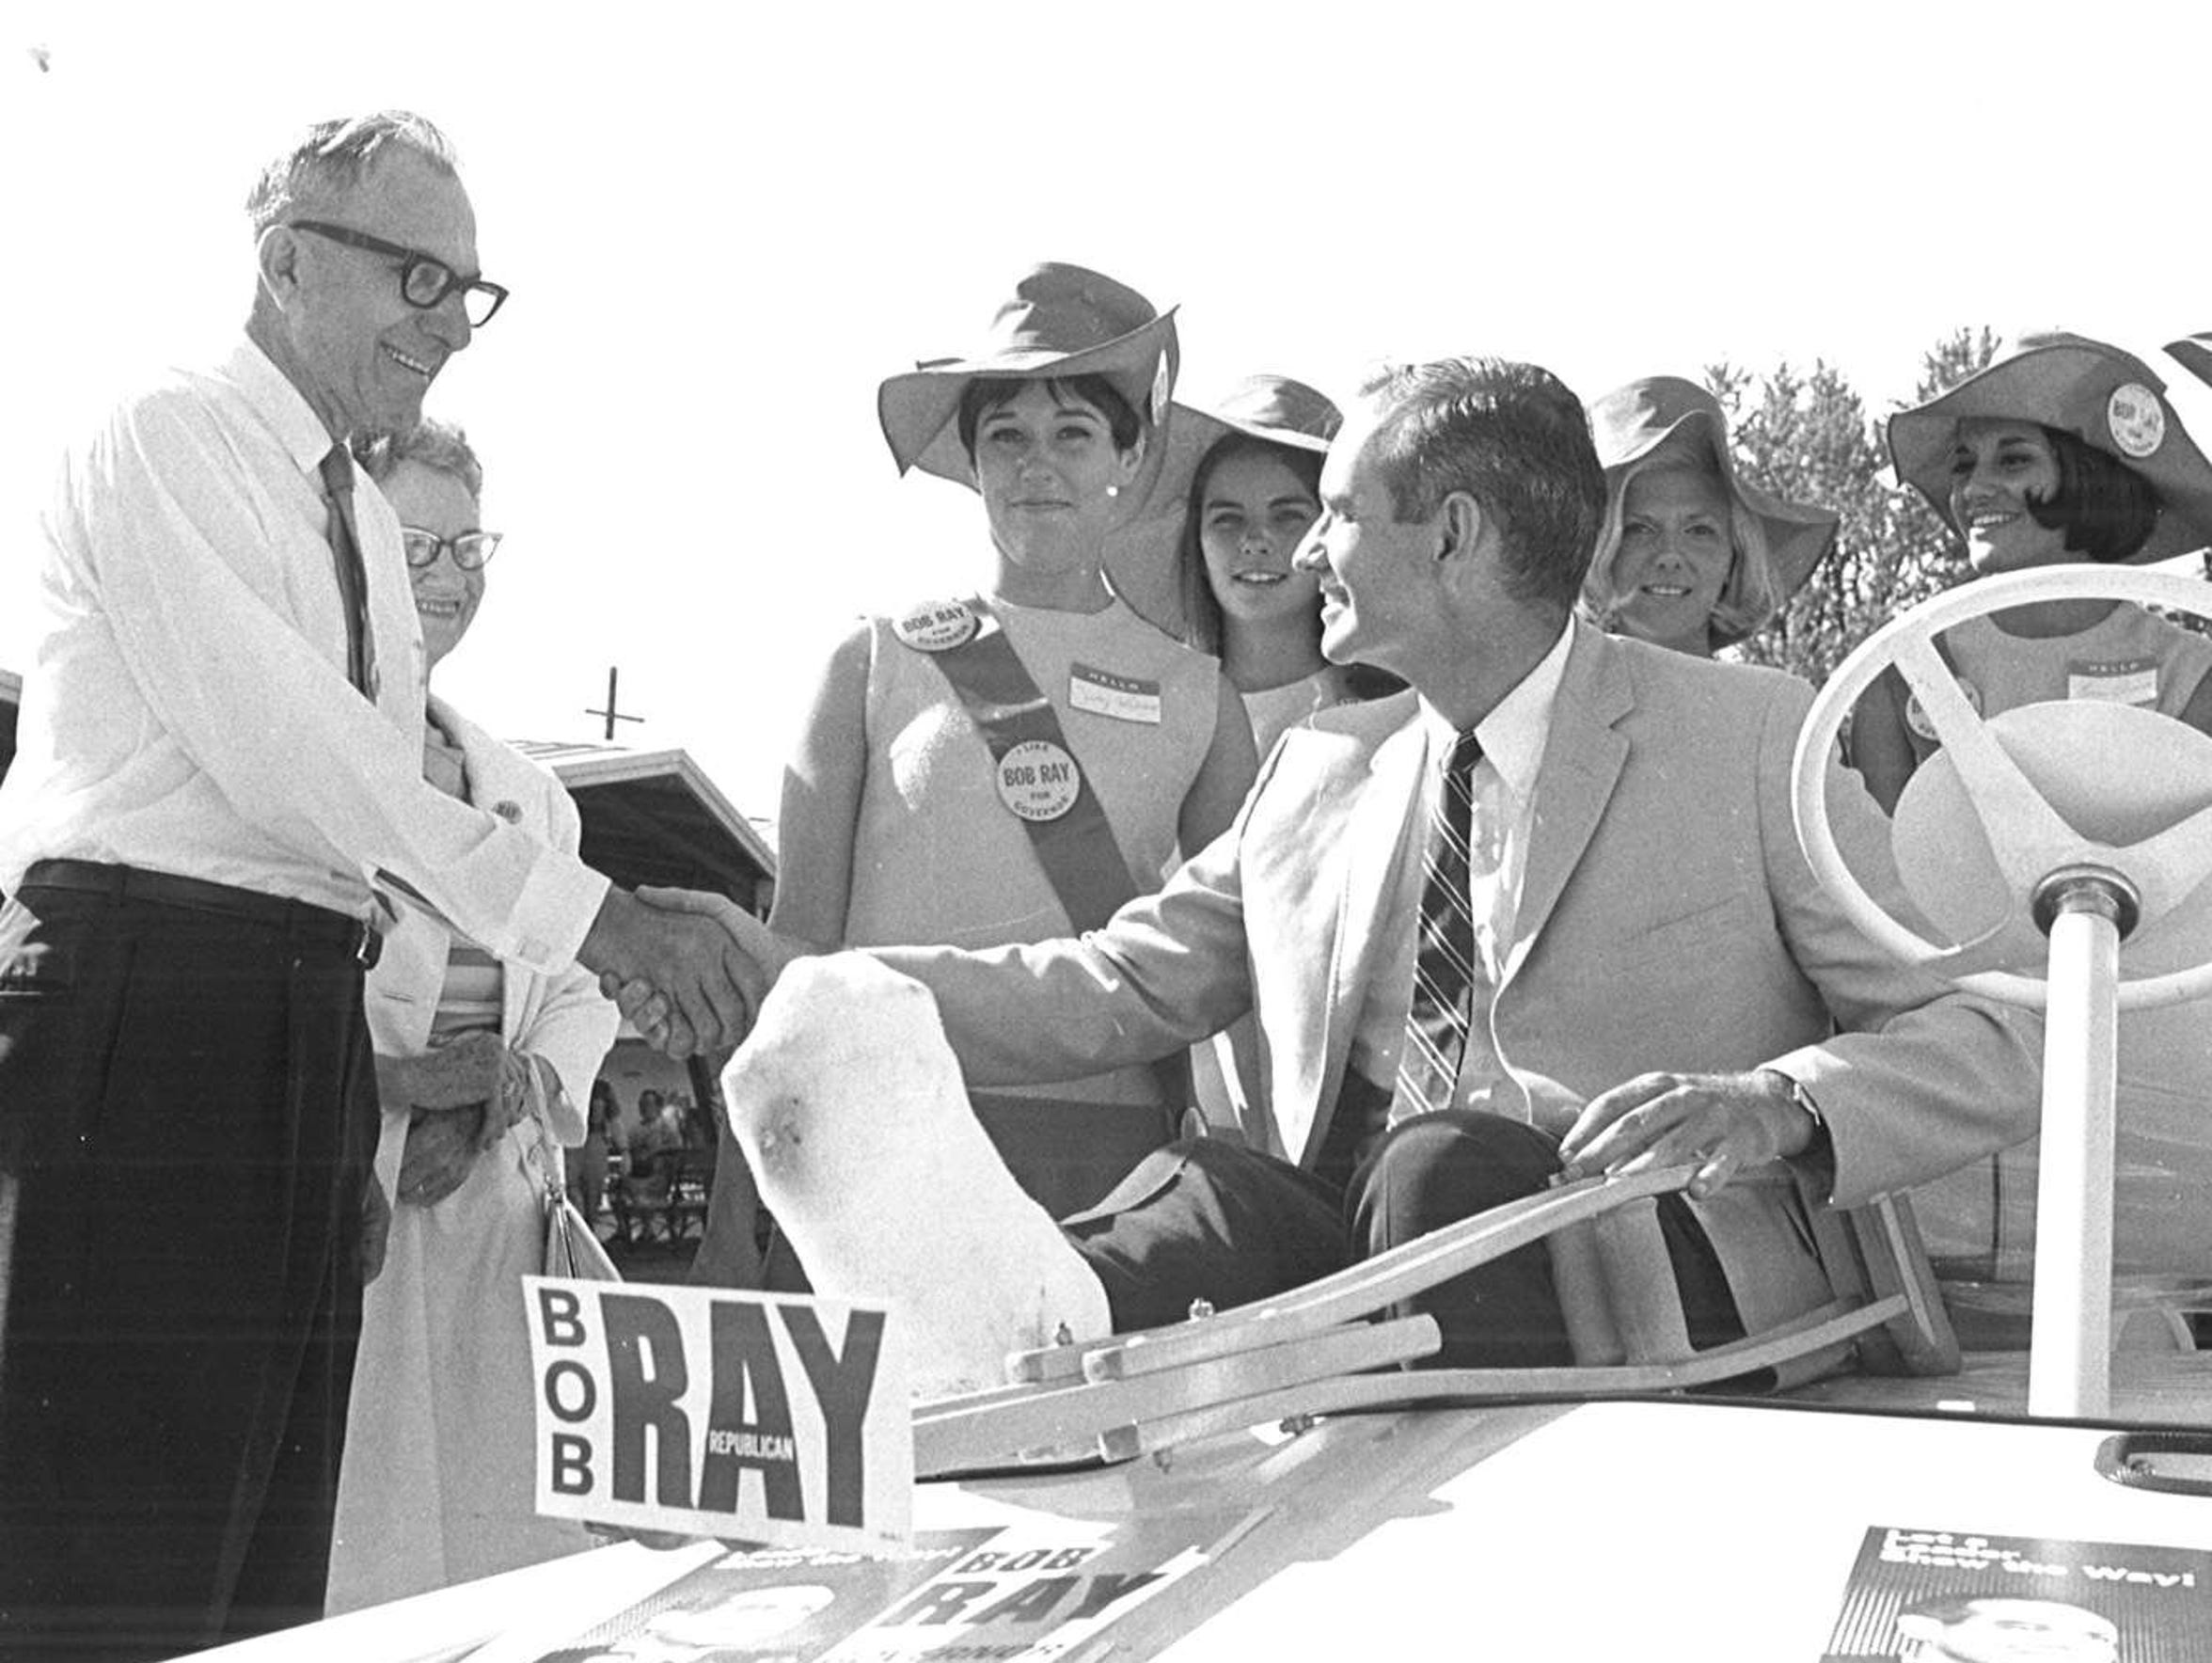 From 1968: Iowa Gov. Robert Ray on the campaign trail